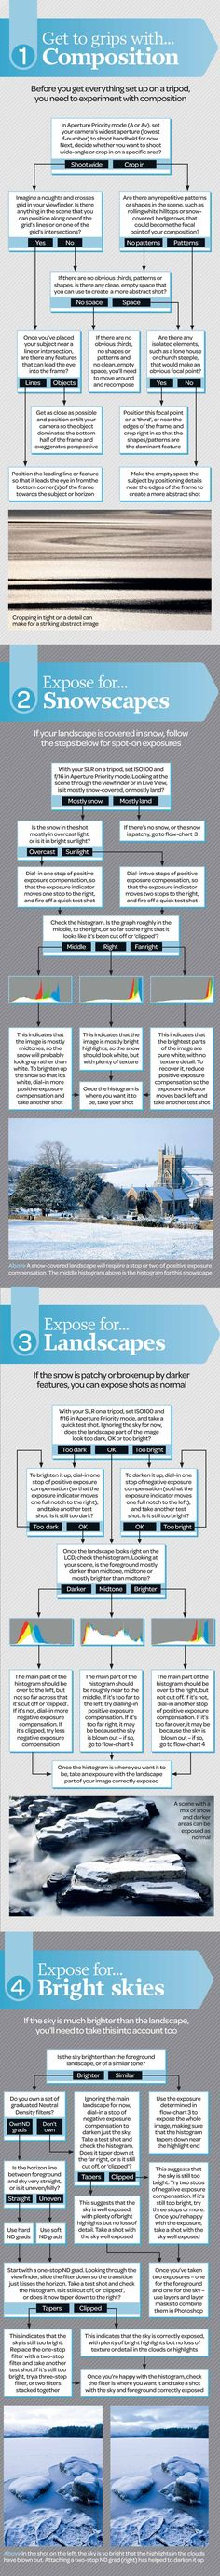 Winter photography #infographic